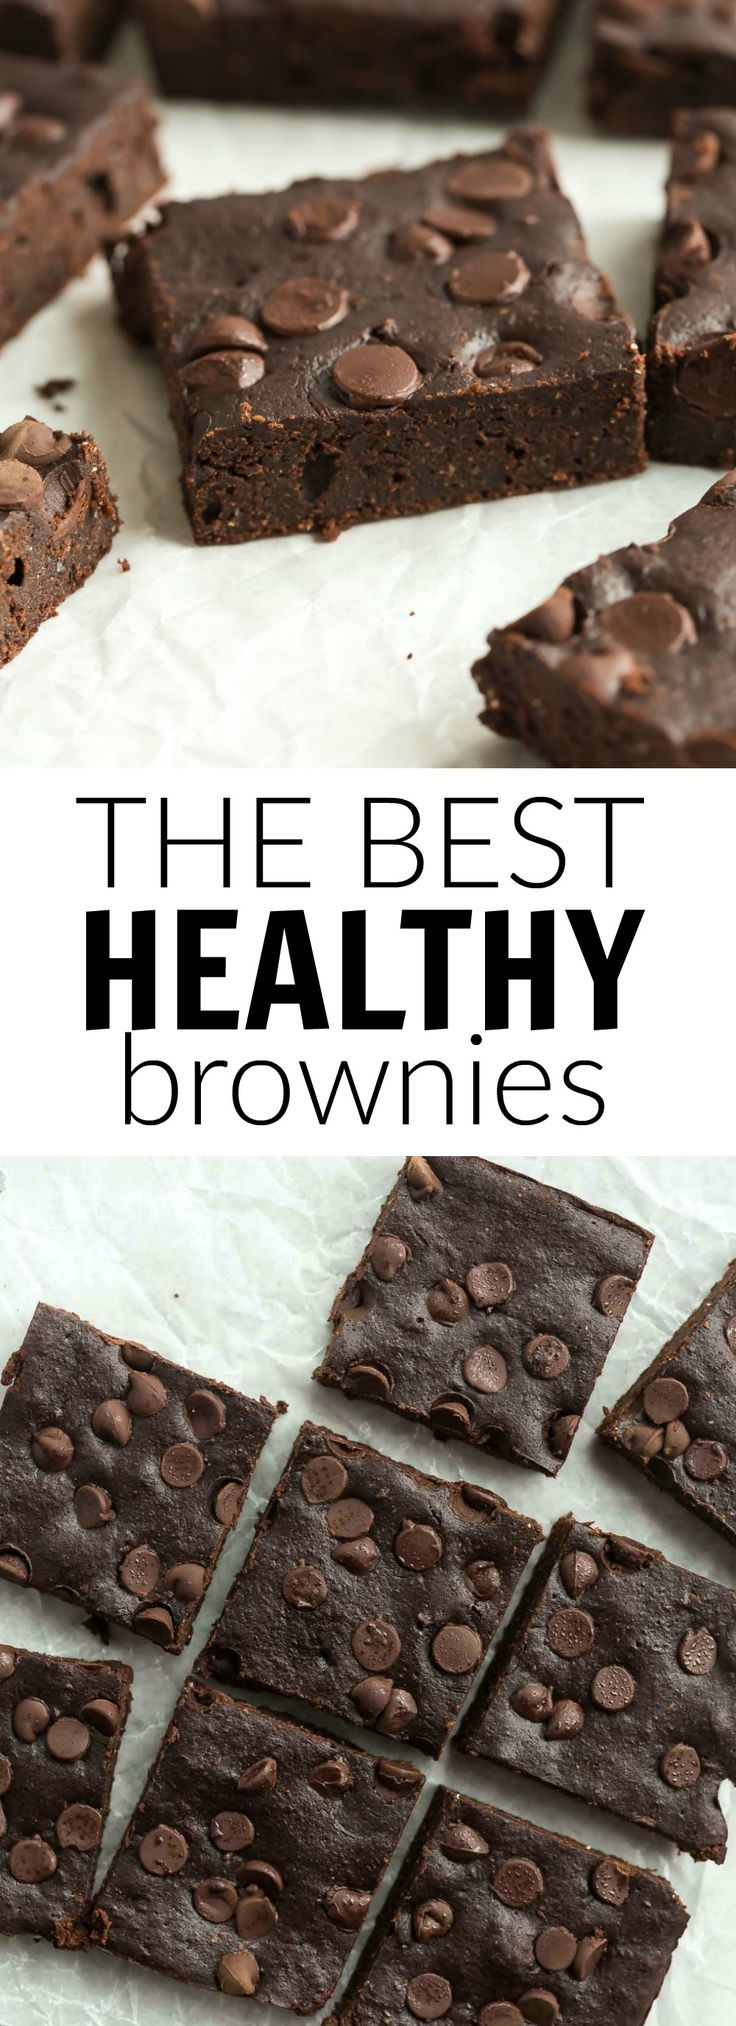 These are the BEST healthy brownies! They are SO fudgy and made with whole wheat flour, coconut oil, applesauce and have reduced sugar. | healthy dessert | chocolate recipe | brownie recipe | easy recipe